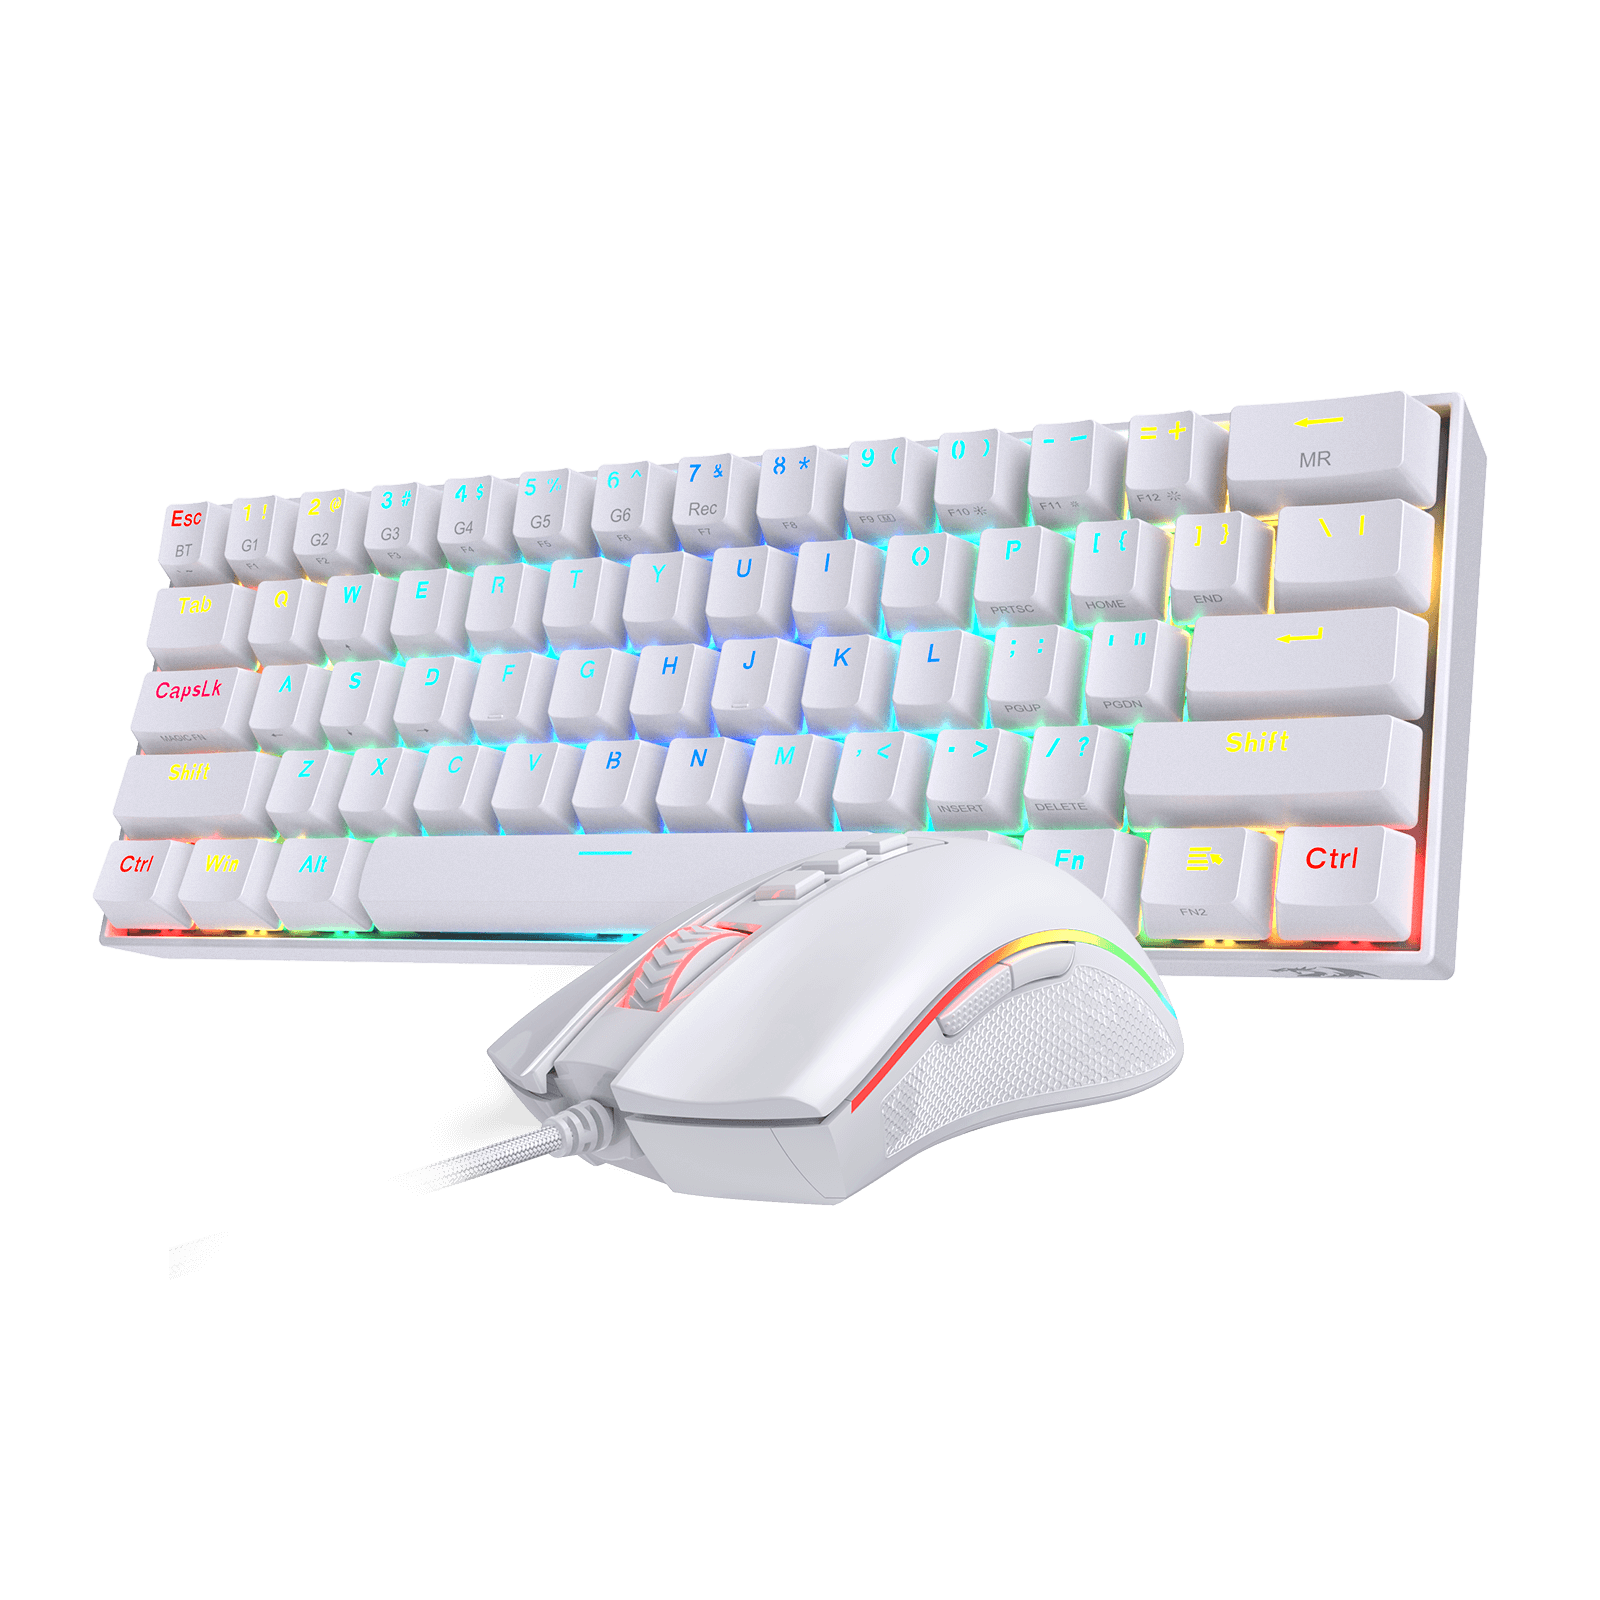 redragon 60 keyboard white and mouse combo